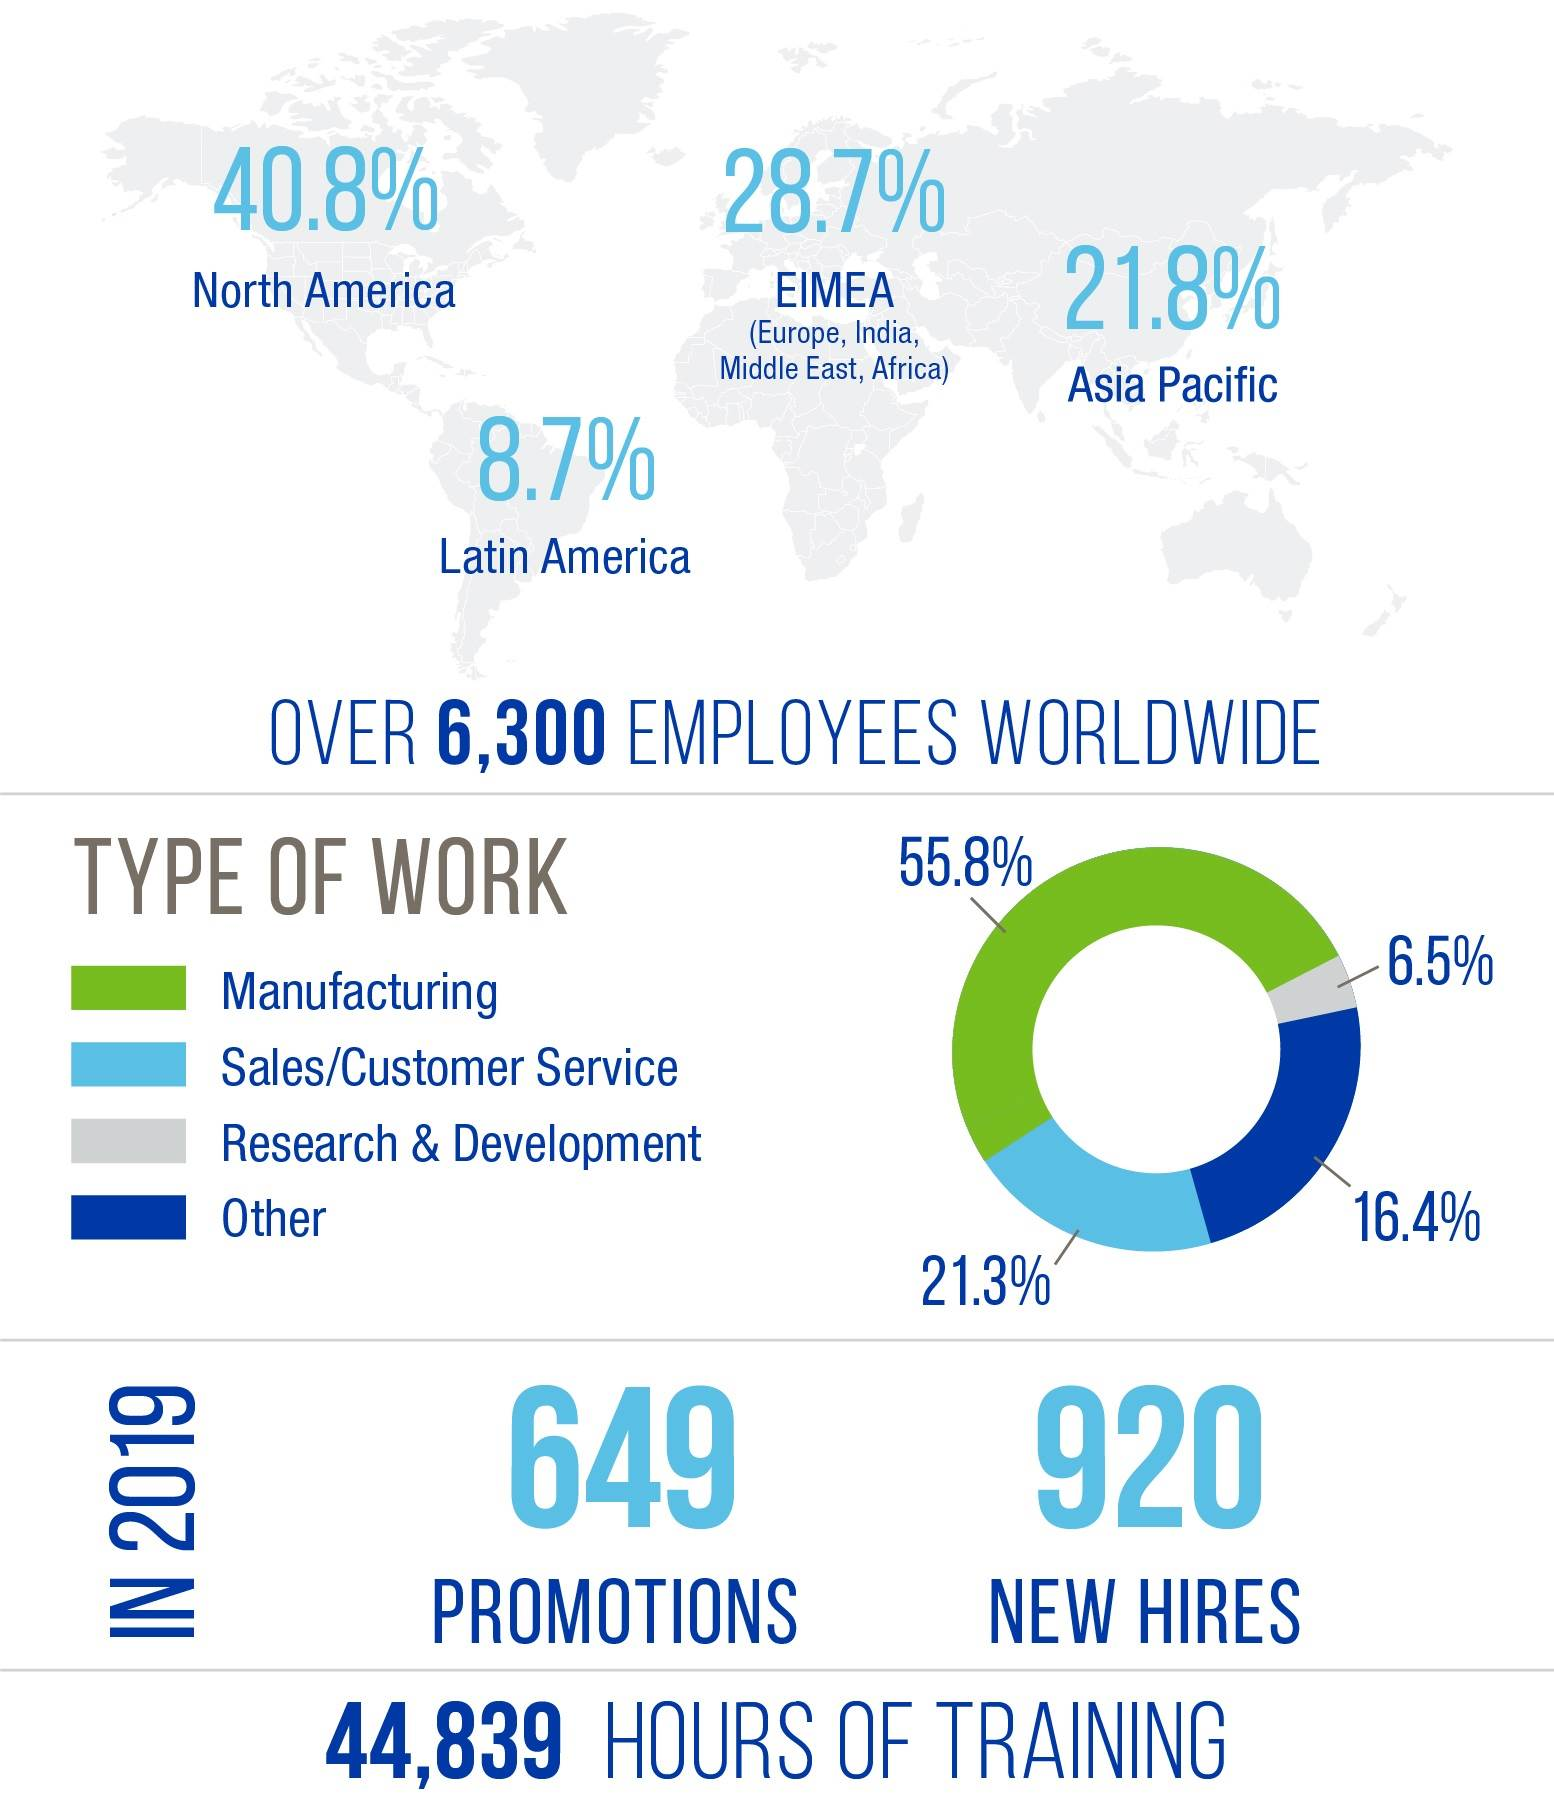 H.B. Fuller workforce infographic for 2019.